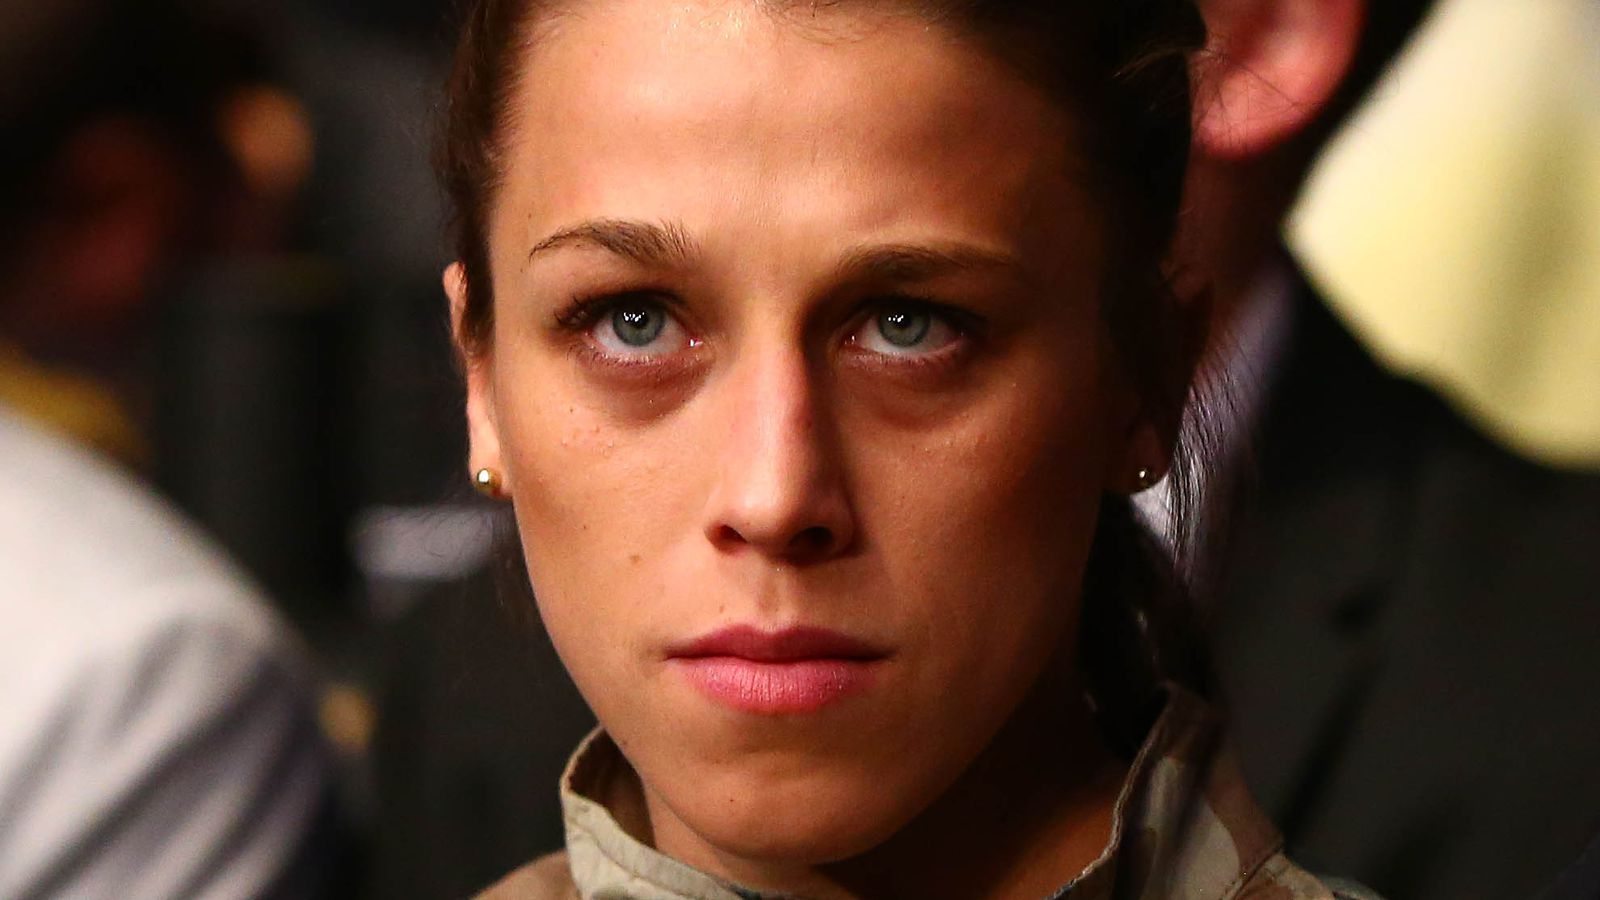 Report: Joanna Jedrzejczyk vs. Karolina Kowalkiewicz title fight set for UFC 205